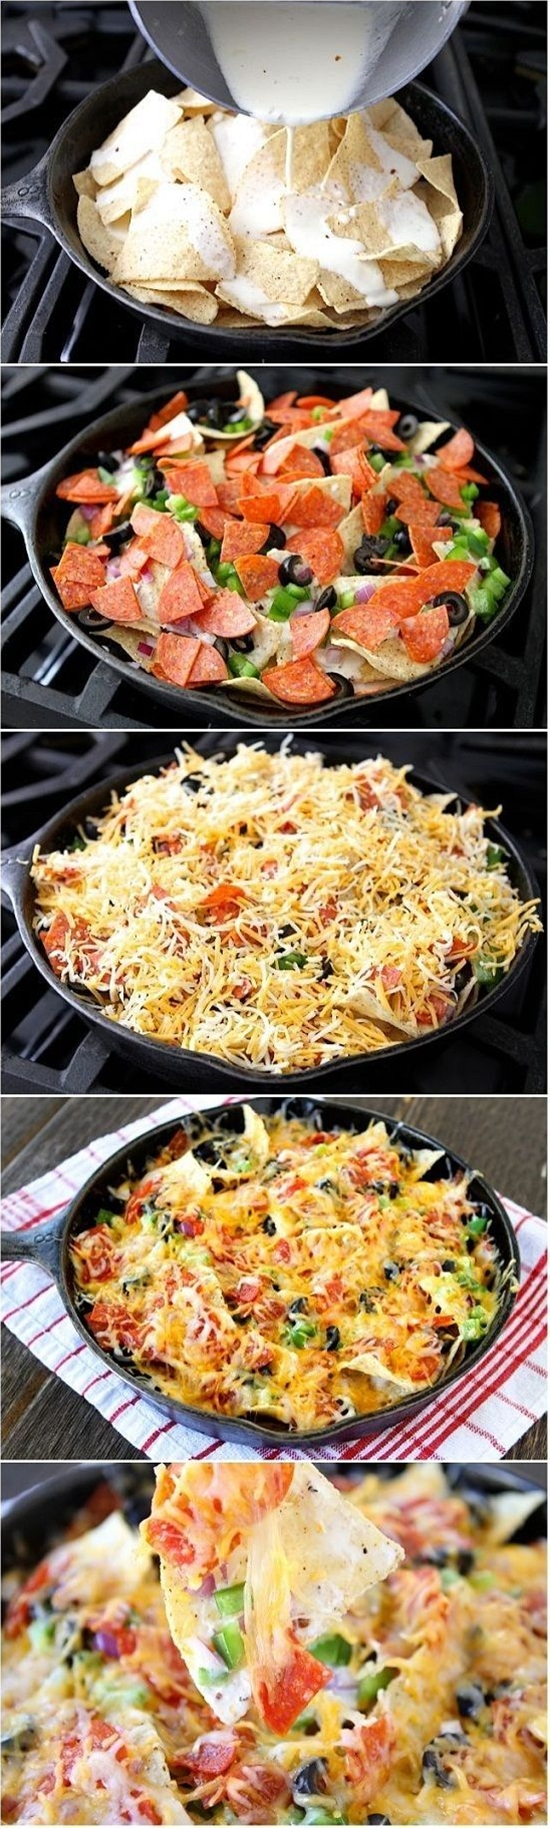 Campfire Nachos these look so good and would really hit the spot on a camping trip or even at a backyard fire pit!